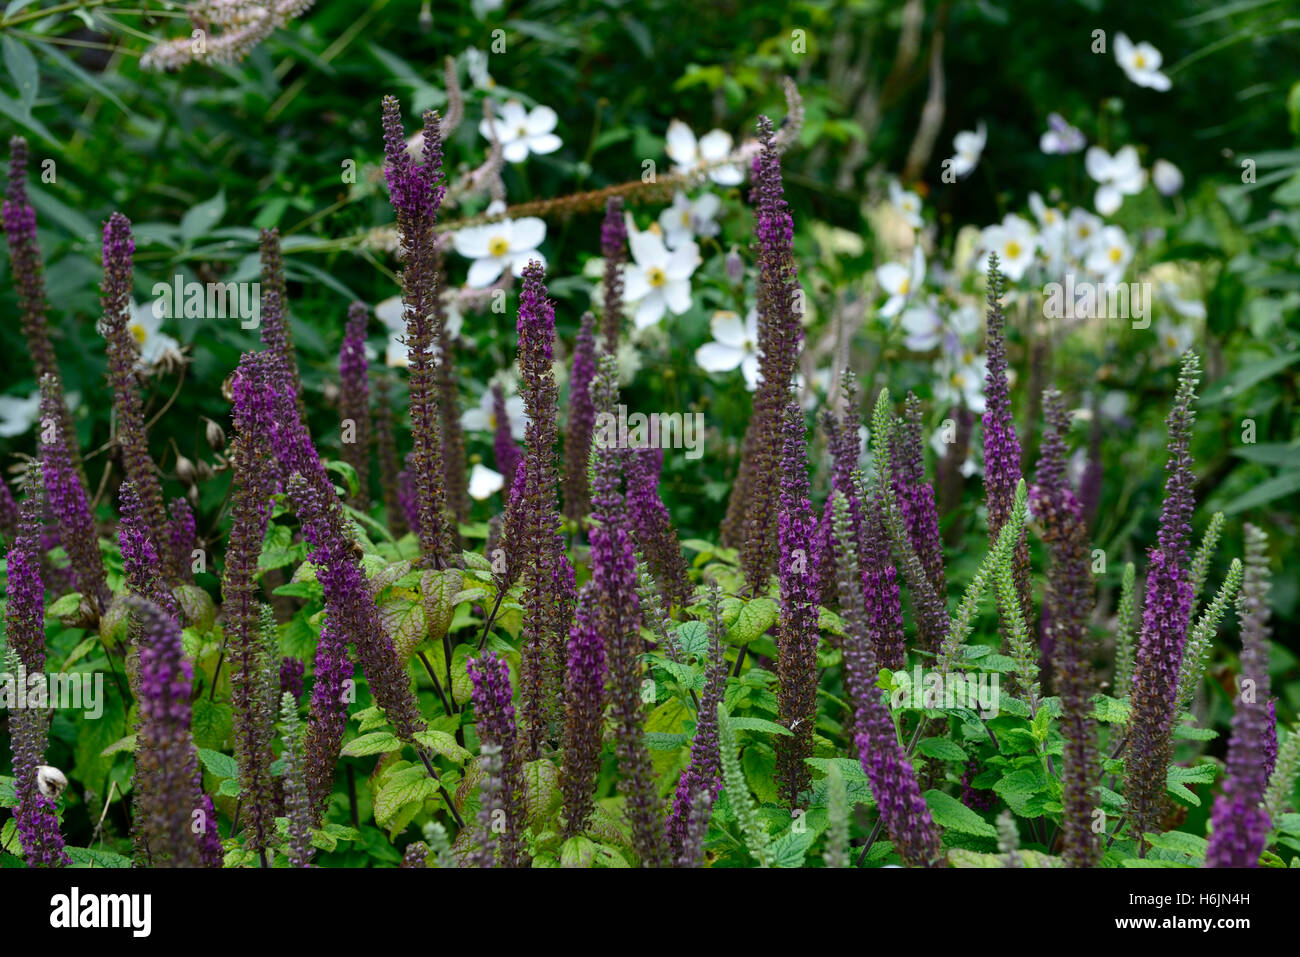 teucrium hircanicum purple tails Germander Wood Sage spires perennials fragrant scented spikes tall RM Floral - Stock Image